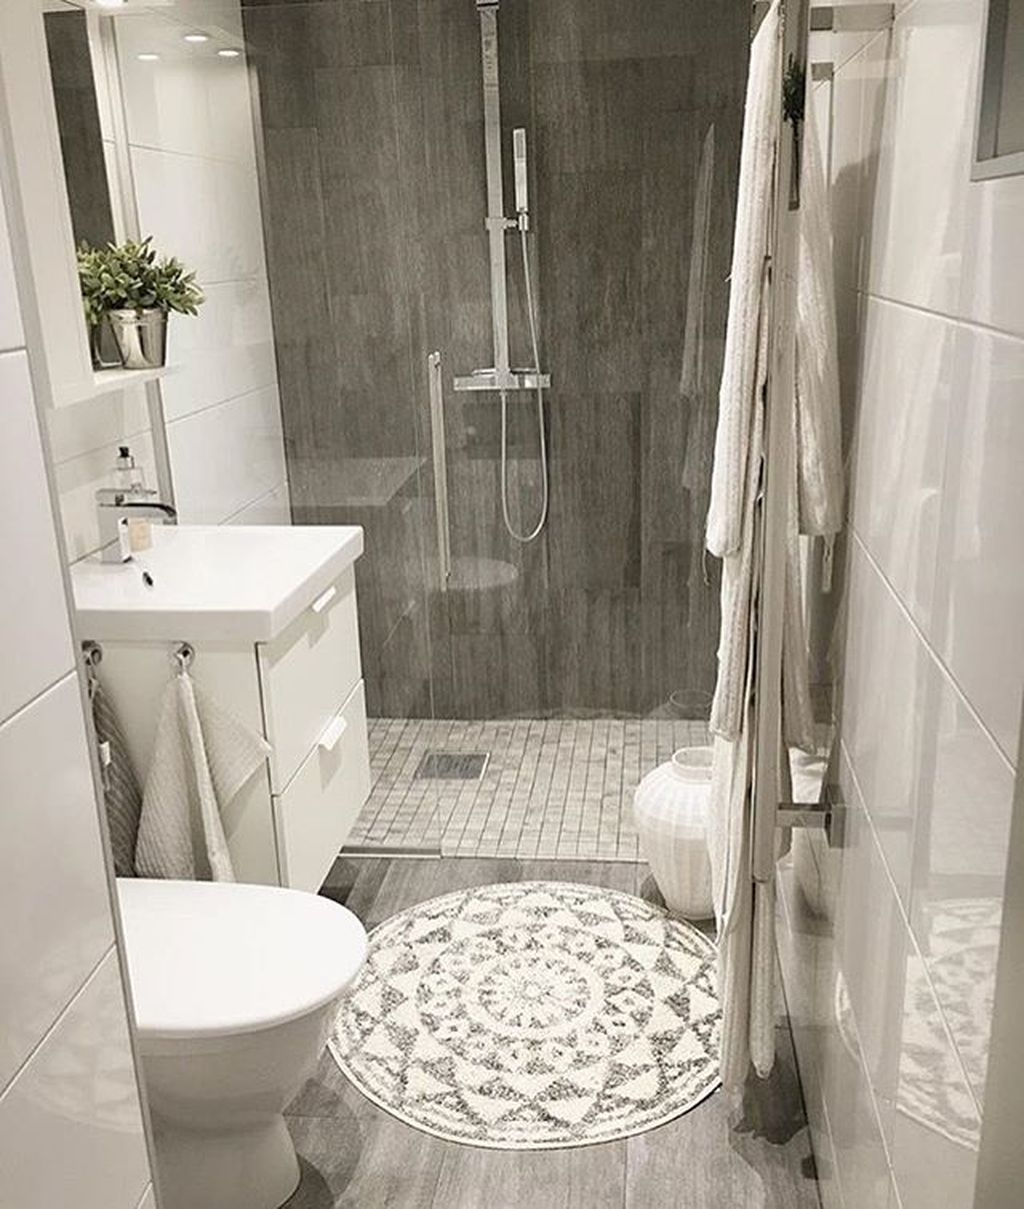 39 cool and stylish small bathroom design ideas homedecorish for Cool bathroom decor ideas